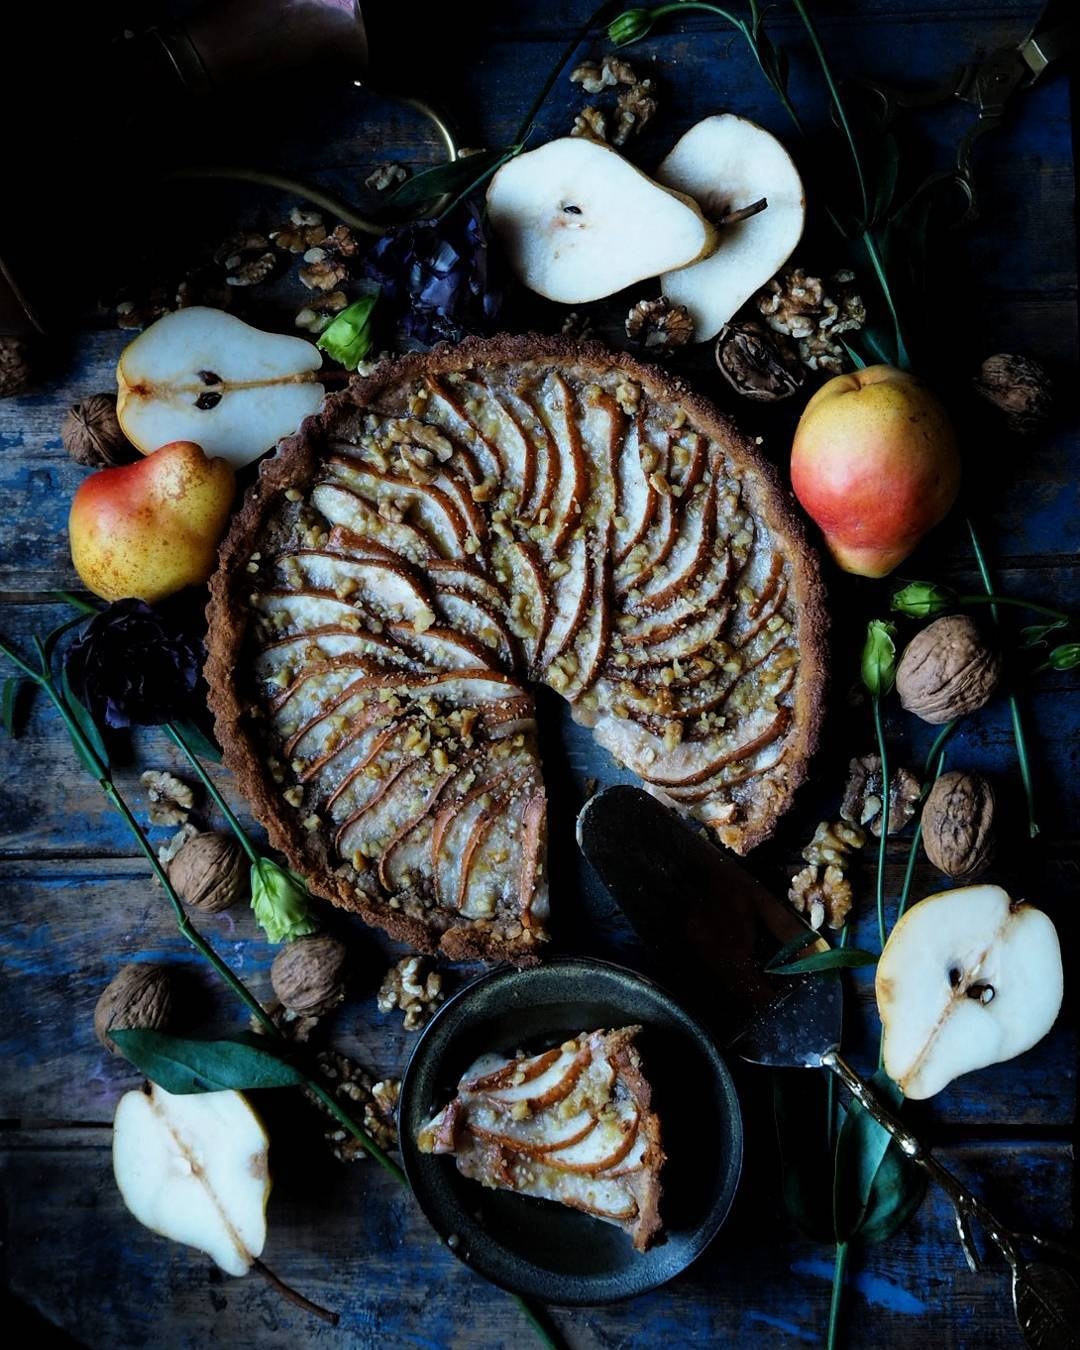 Pear Walnut and Marzipan Tart